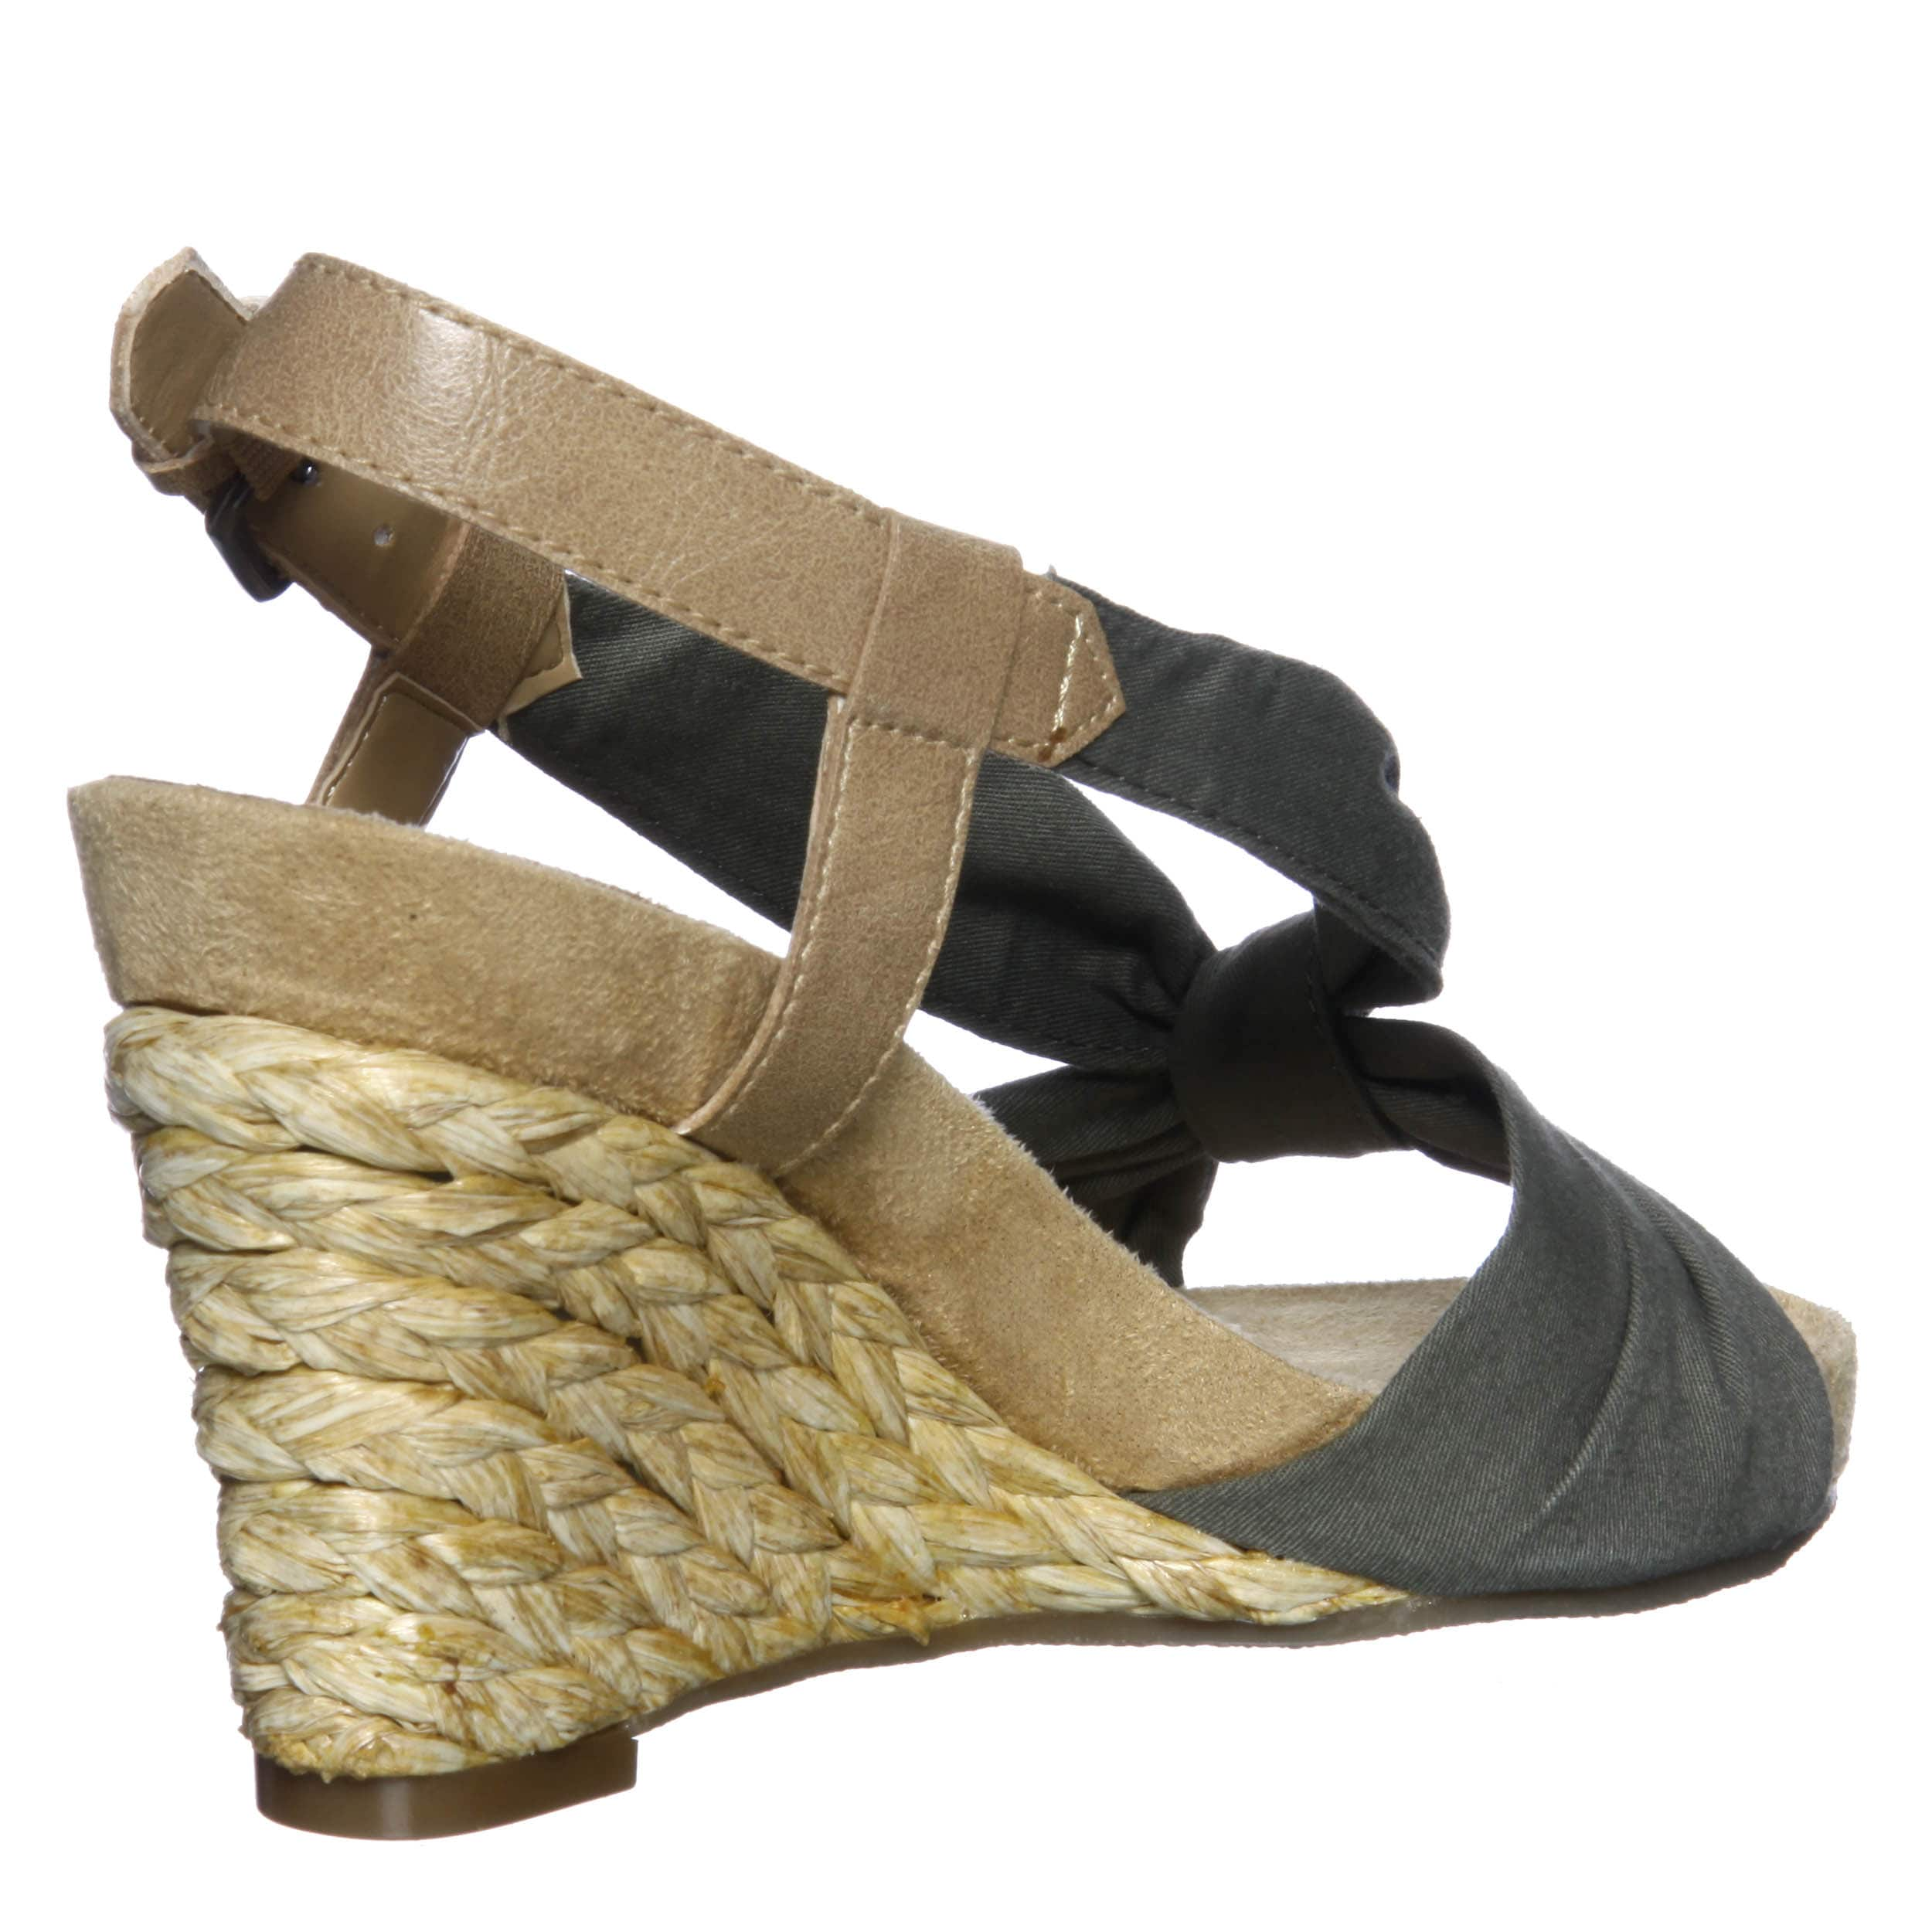 4dbca3507424 Shop Aerosoles Women s  Plush Pillow  Green Wedge Sandals FINAL SALE - Free  Shipping On Orders Over  45 - Overstock - 6455402